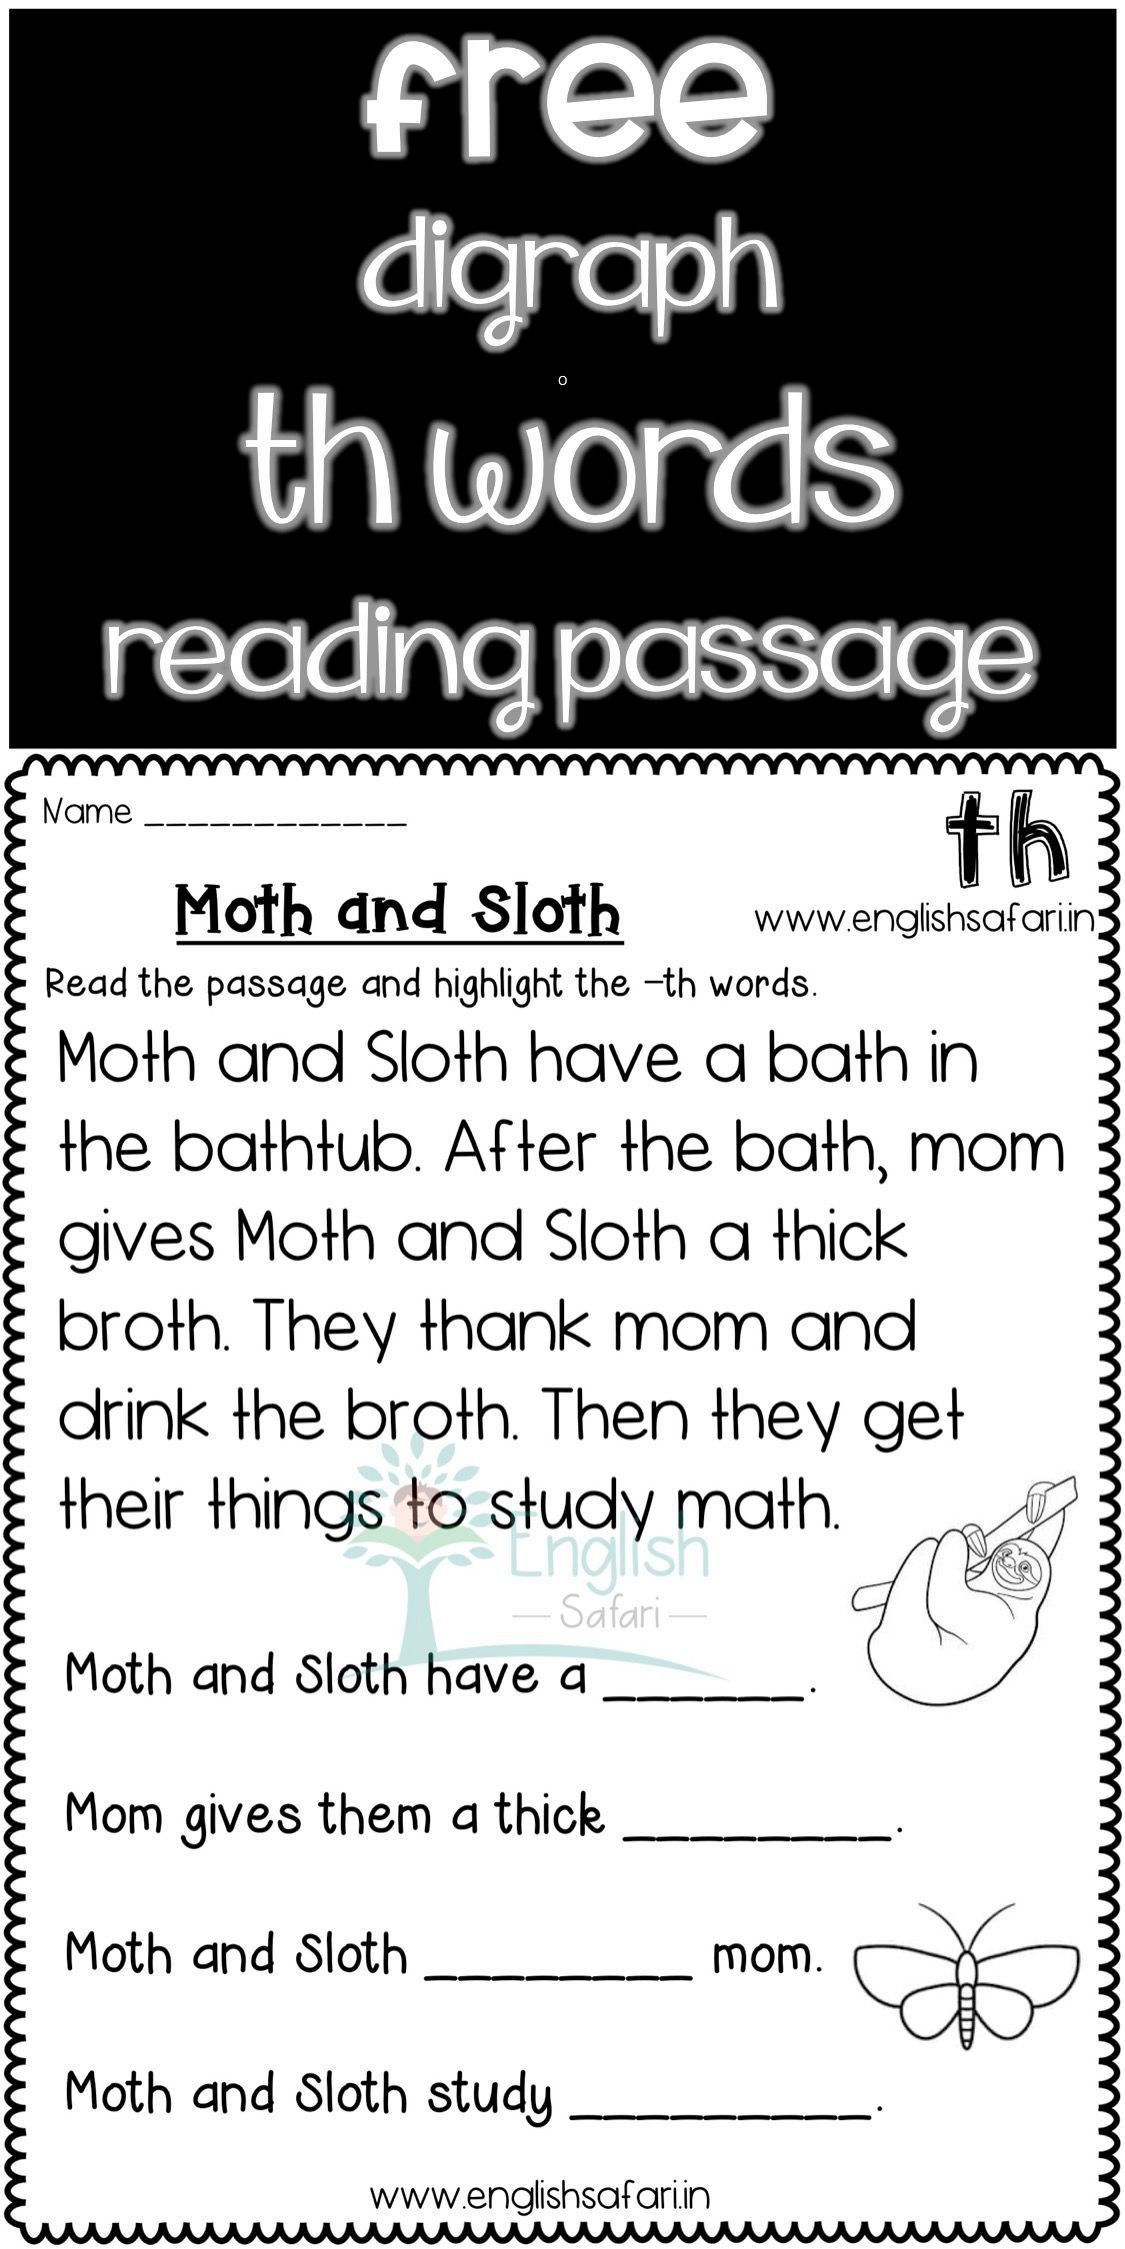 Free Th Words Reading Comprehension Www Worksheetsenglish Com Reading Comprehension Passages Free Phonics Reading Passages Fluency Passages [ 2249 x 1125 Pixel ]